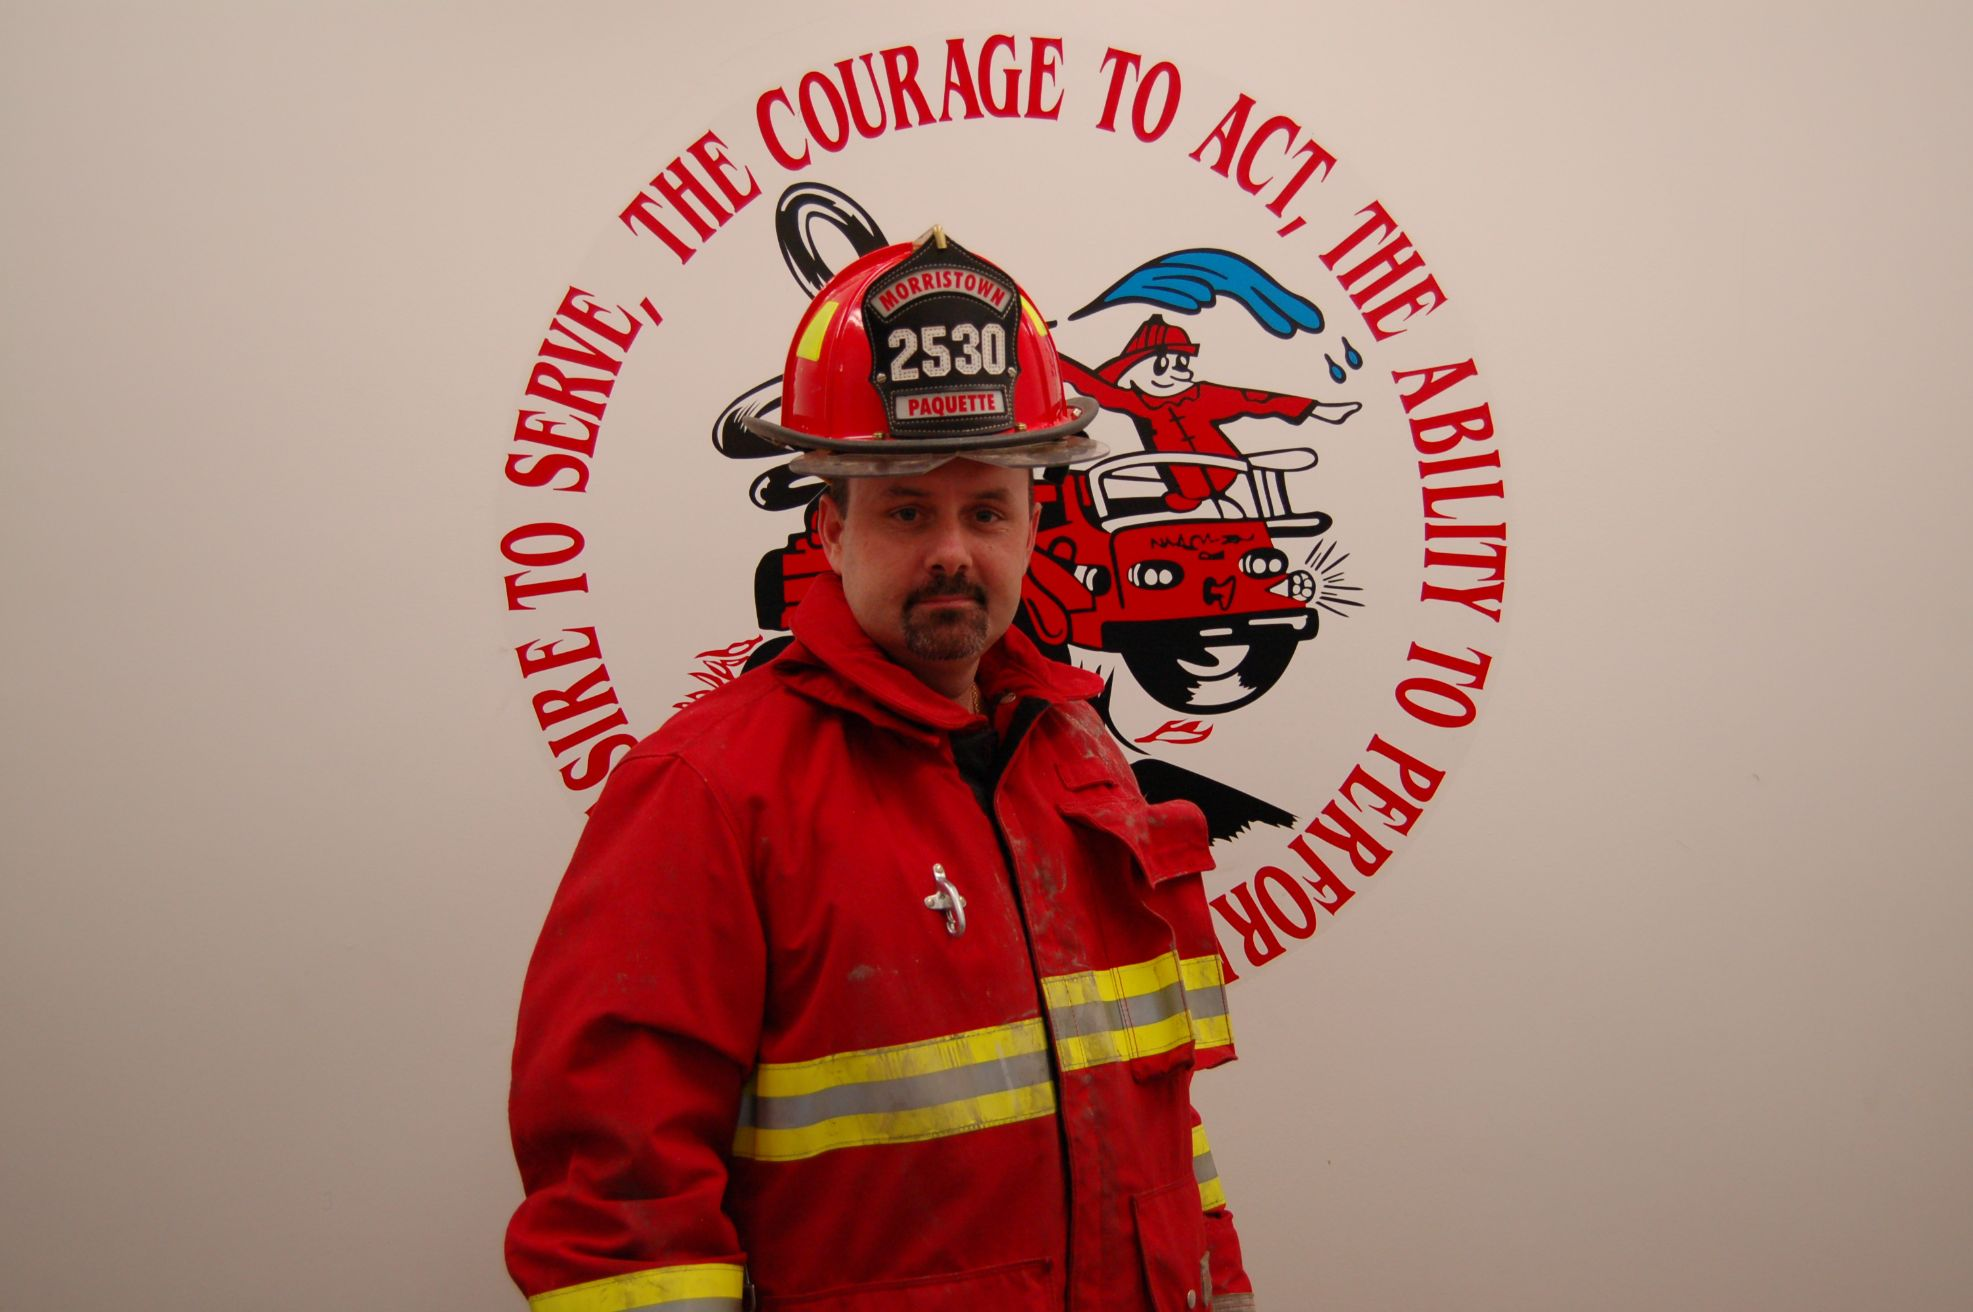 Fire Fighter Peter Paquette